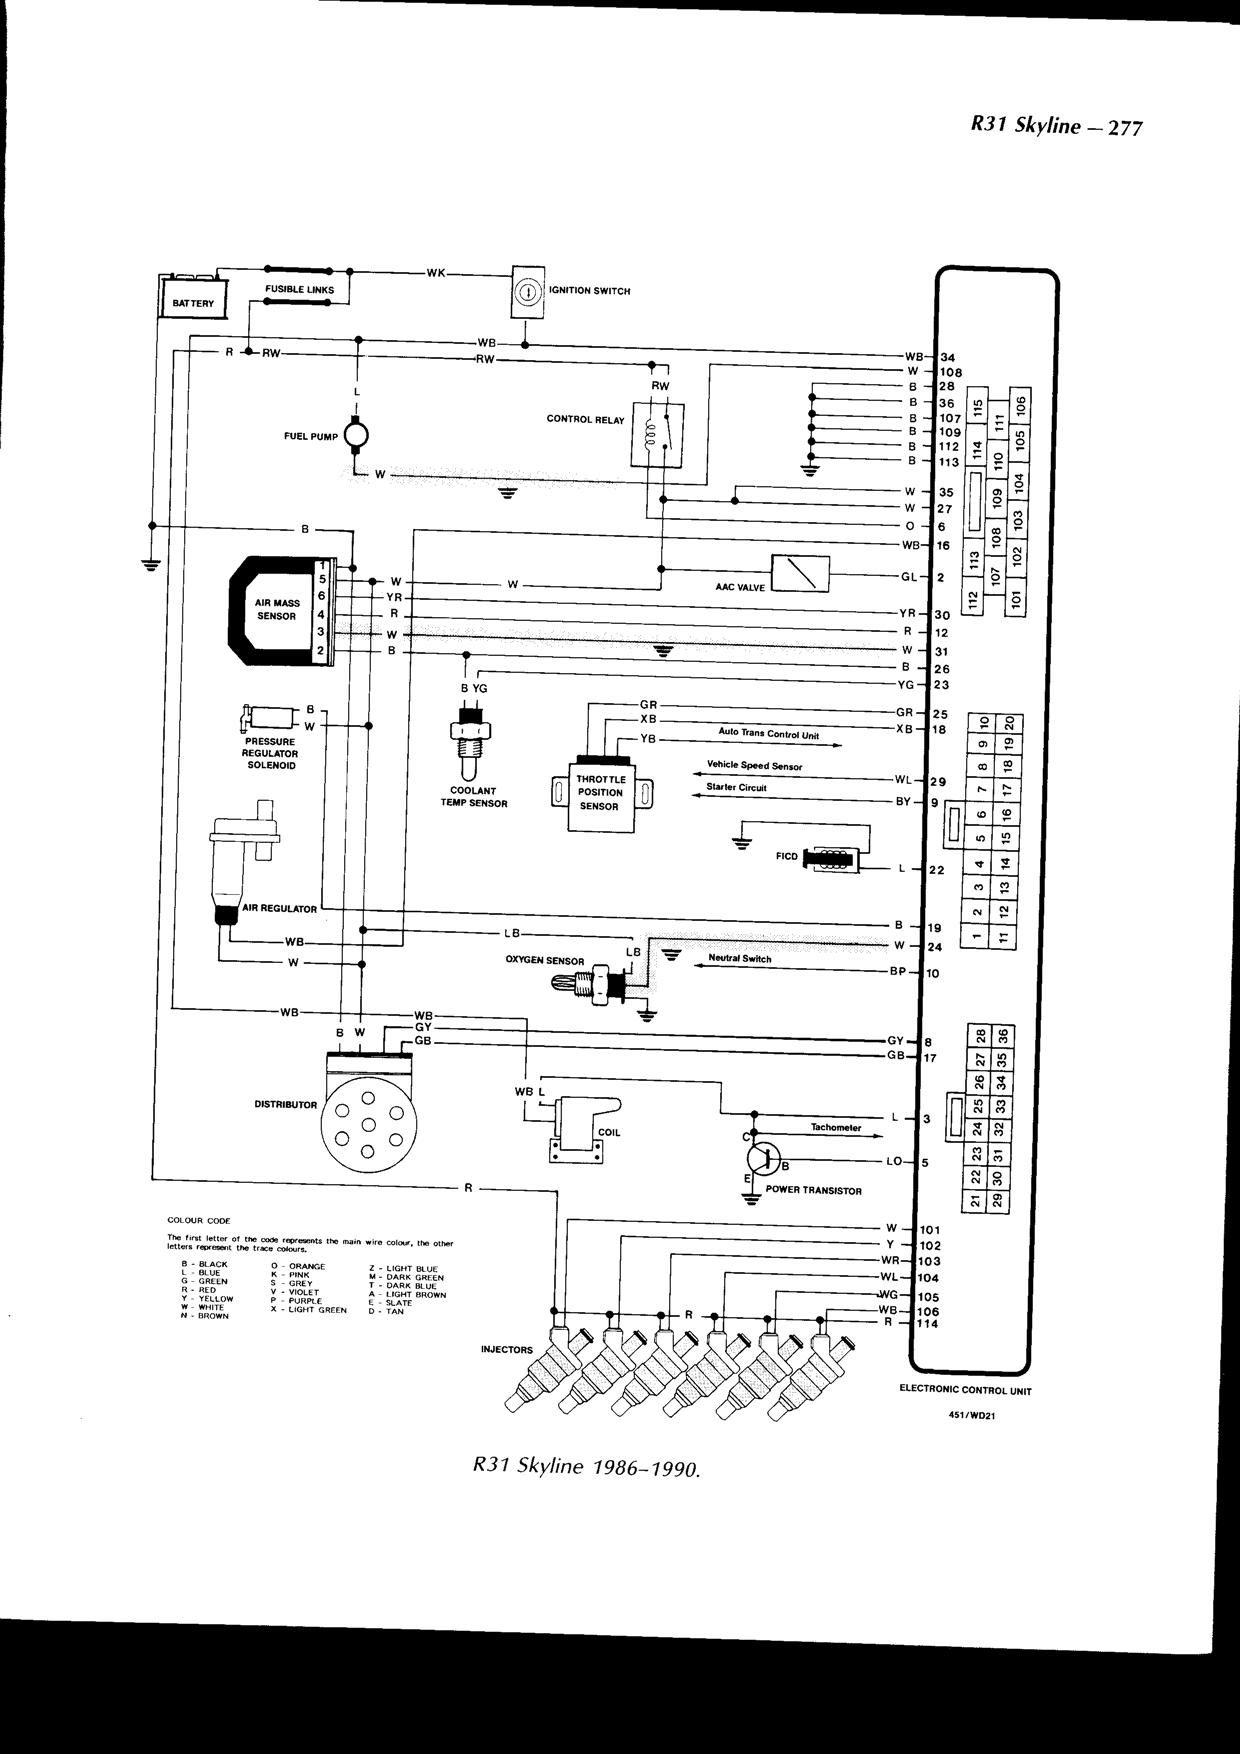 hight resolution of datsun 510 headlight wiring diagram wiring library datsun 510 headlight wiring diagram